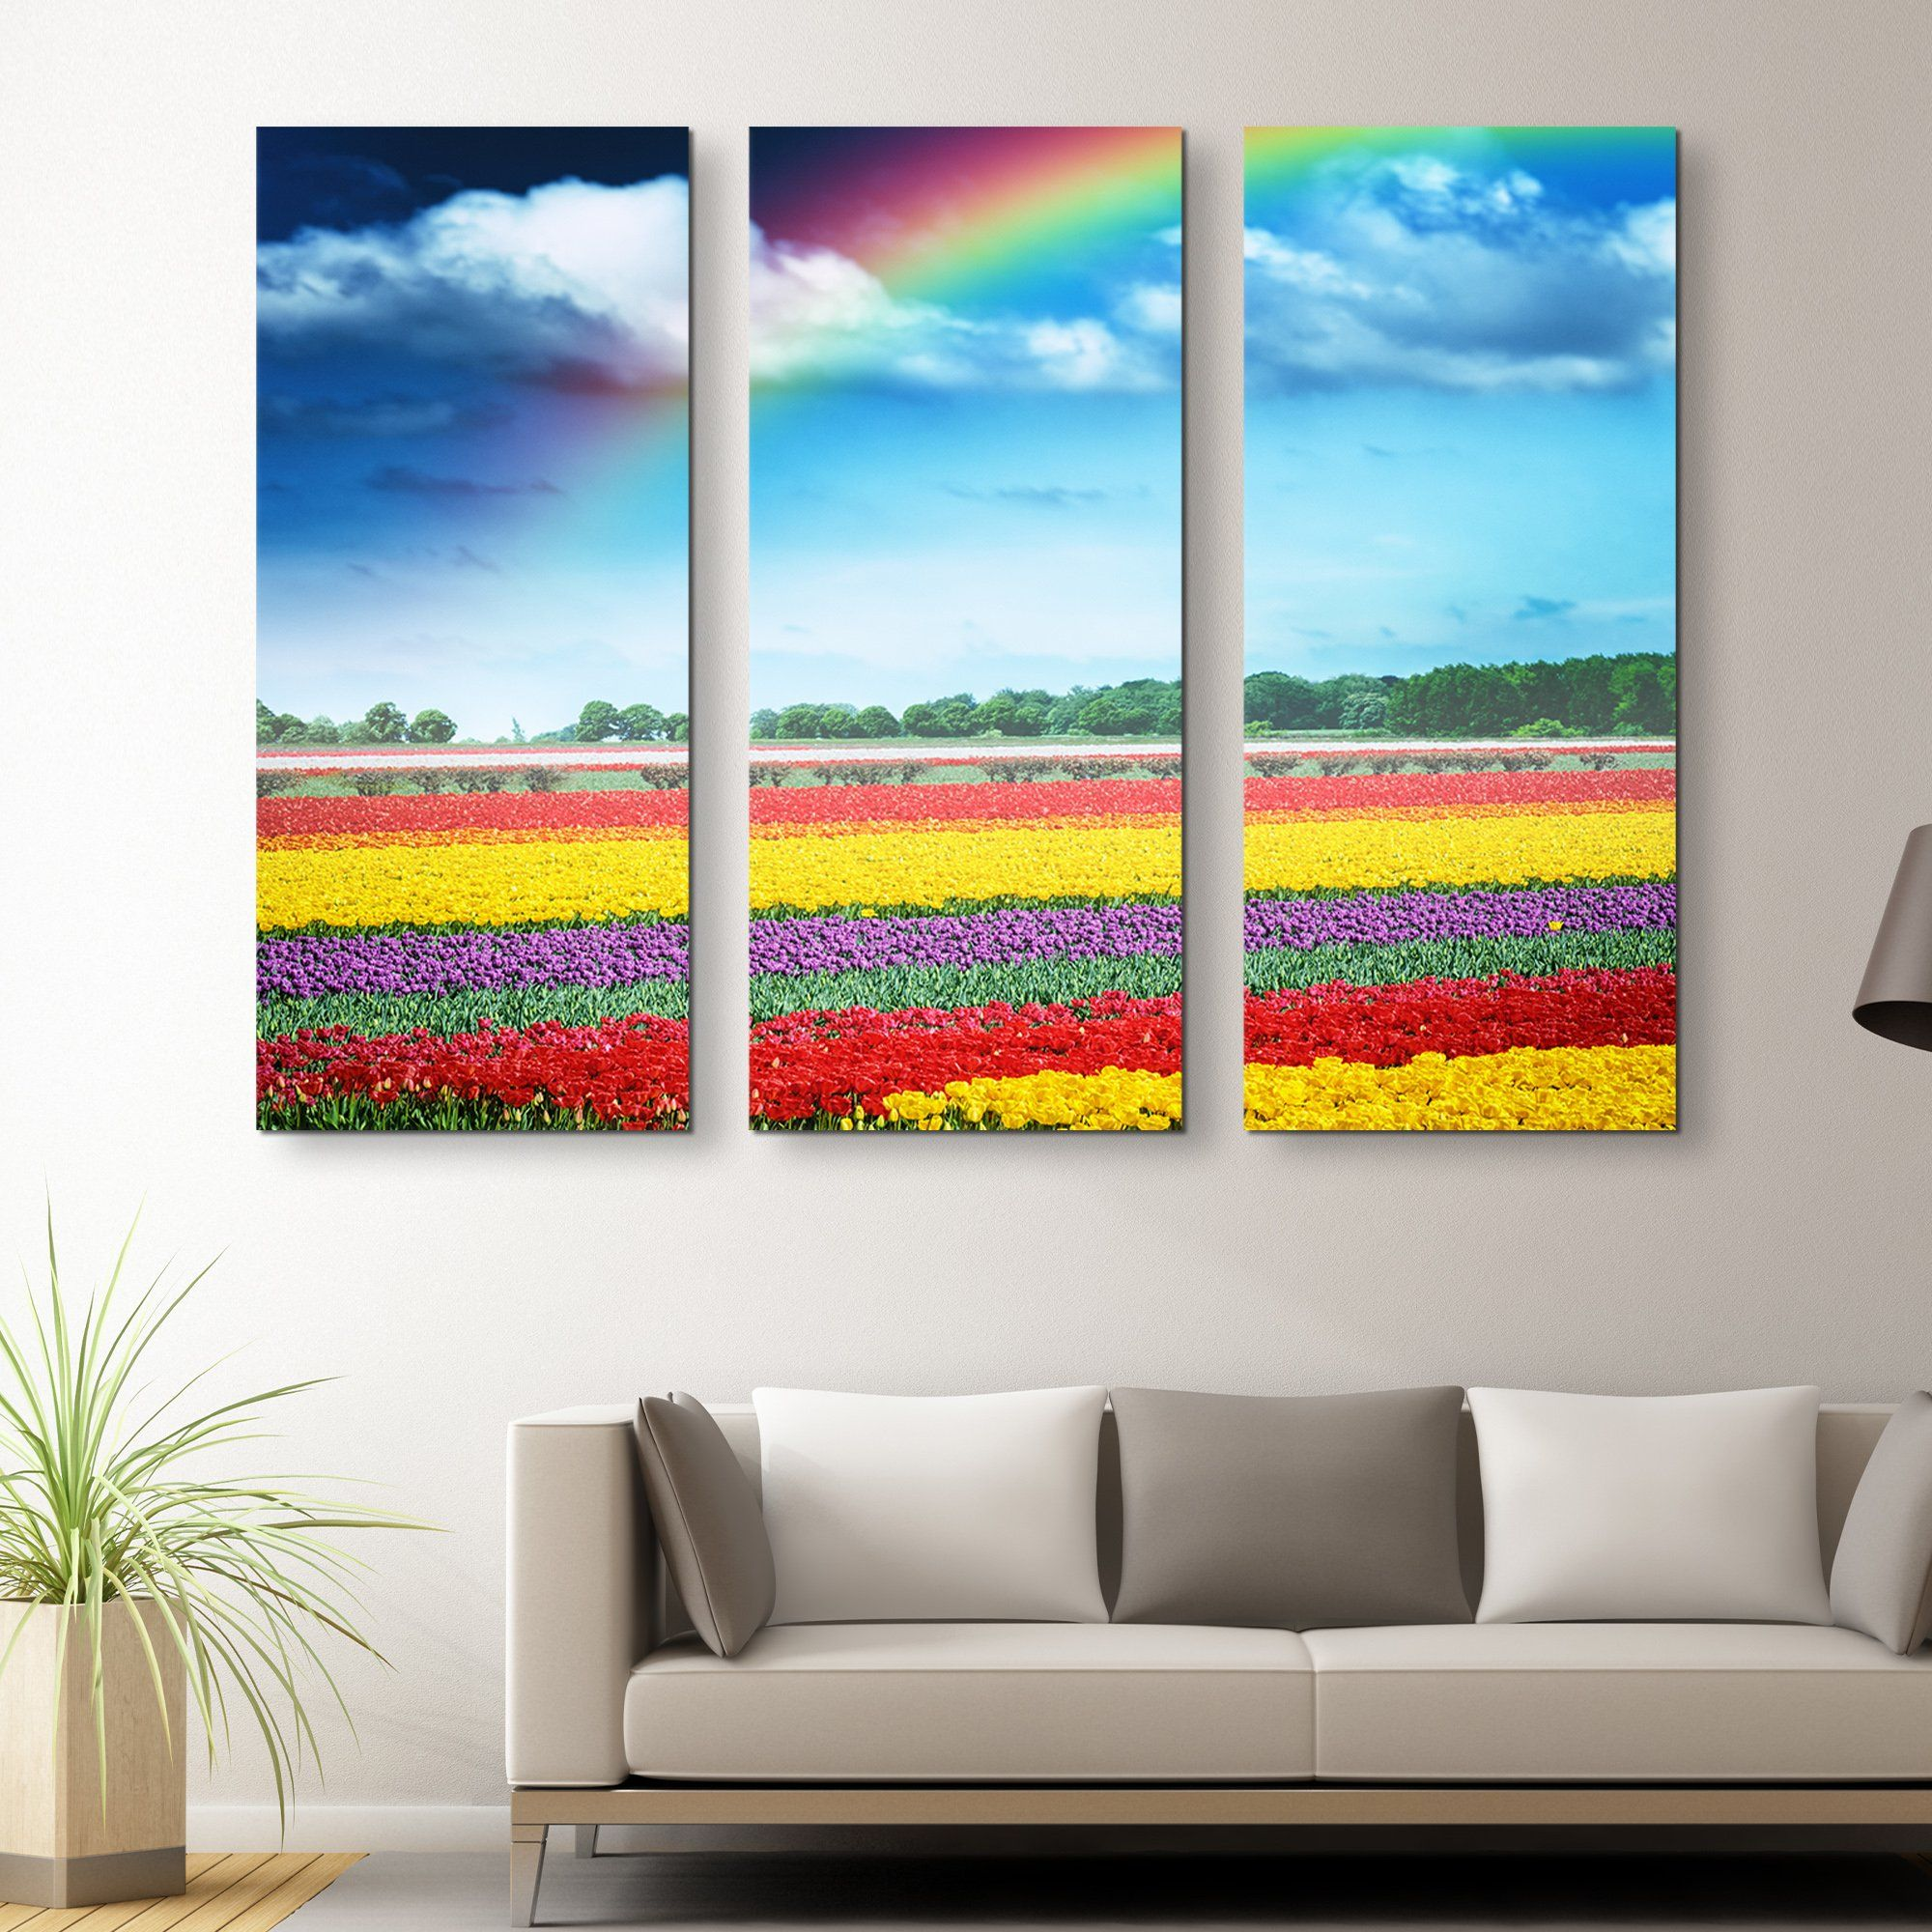 3 piece Rainbow Over Tulips wall art